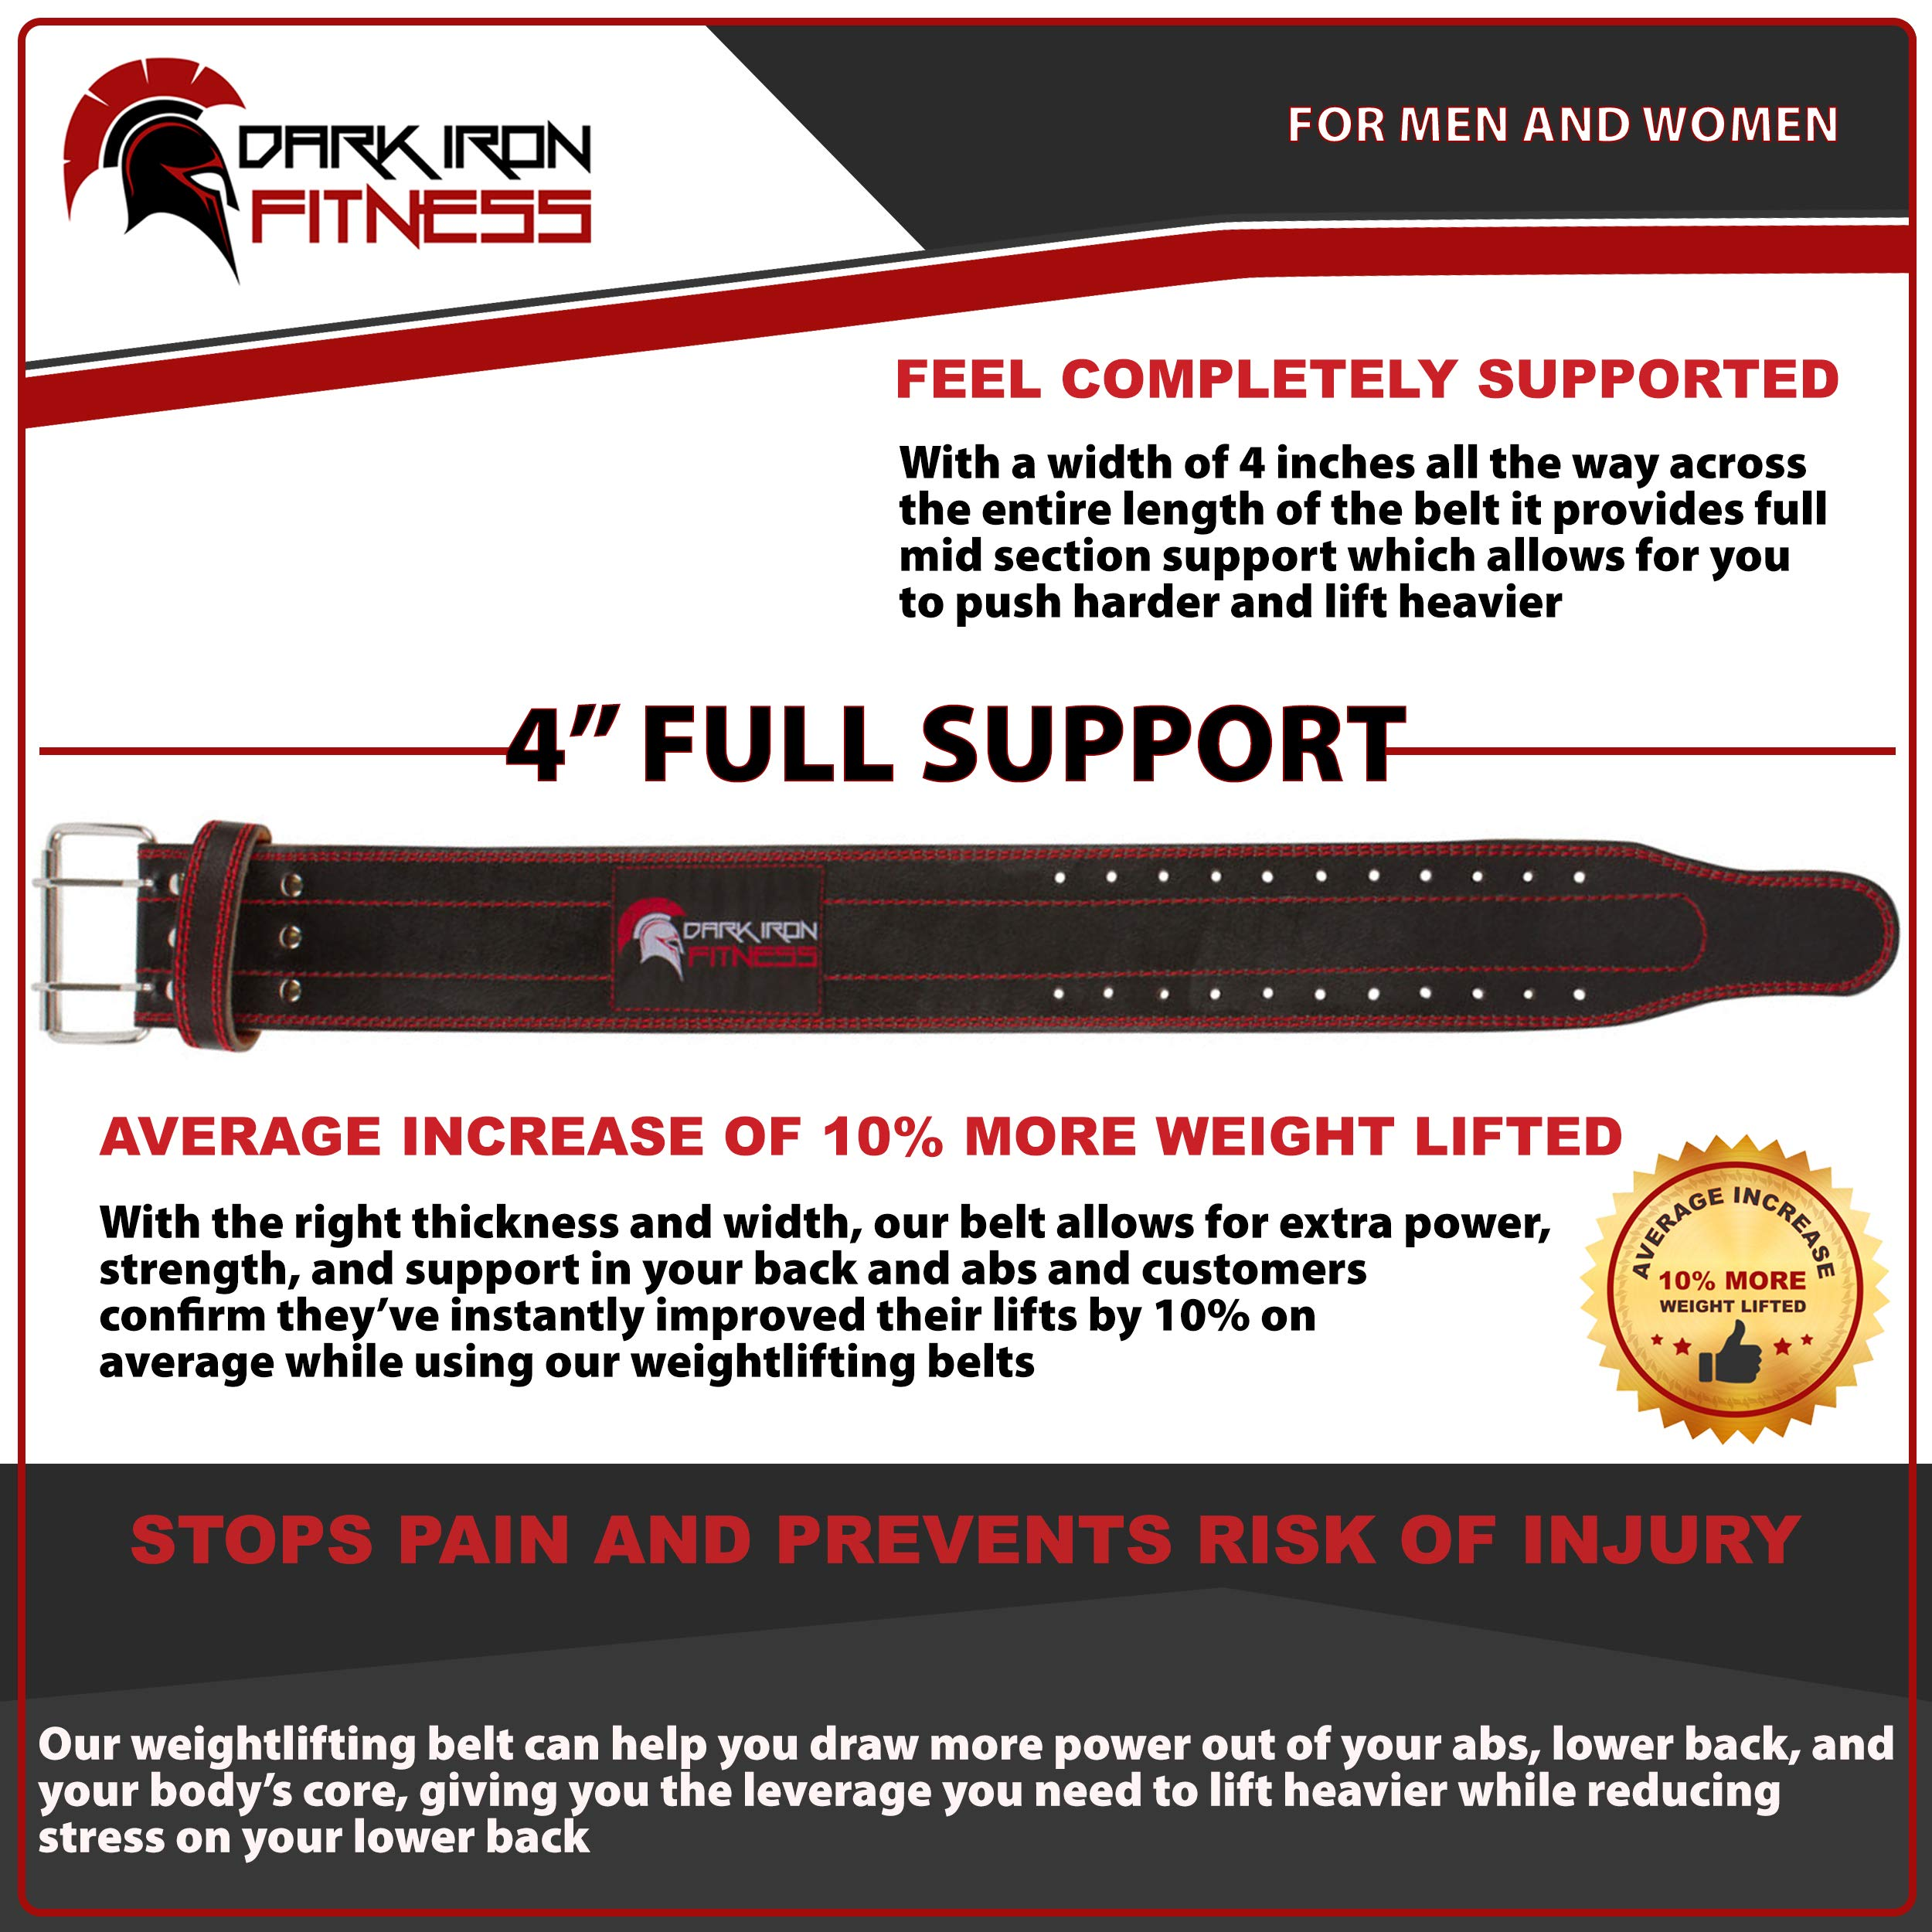 Small Lifting Leather Squatt Belt Weight Lifiting Belts for Back Fitness Belt Workot Belt Wheigt Belt Weight Lifting Belts Weighlifting Back Belt Fitness Belts Mens Weight Lifting Belt Lifting by Dark Iron Fitness (Image #4)